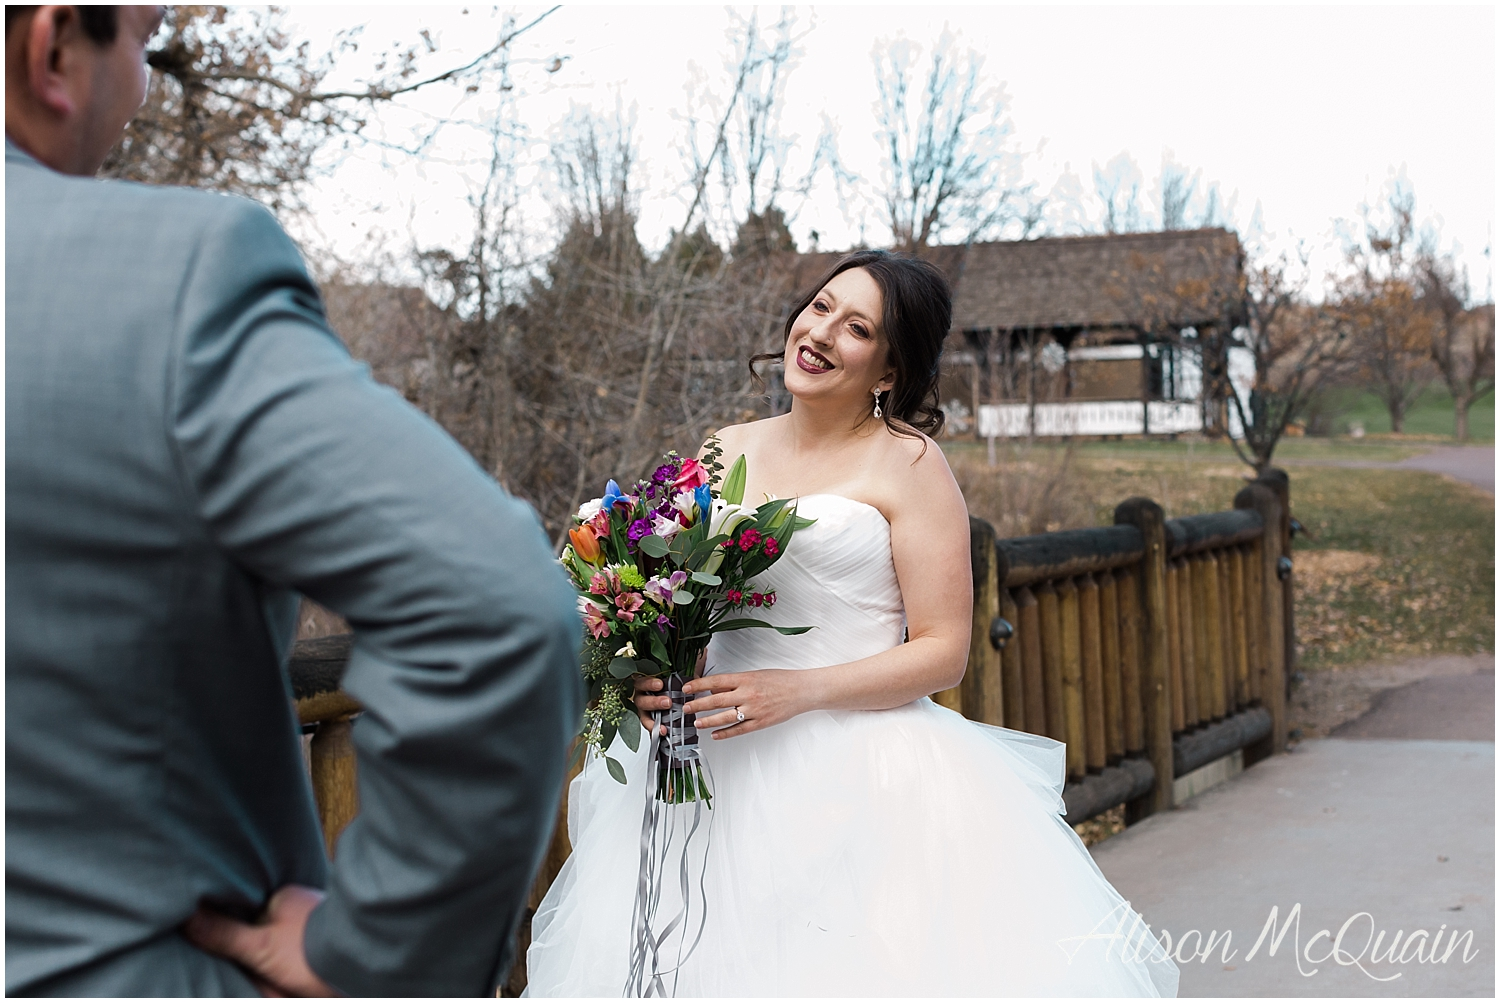 Zako_Wedding_ChatfieldFarm_Denver_Fall_2018_AlisonMcQuainPhotography_0004.jpg